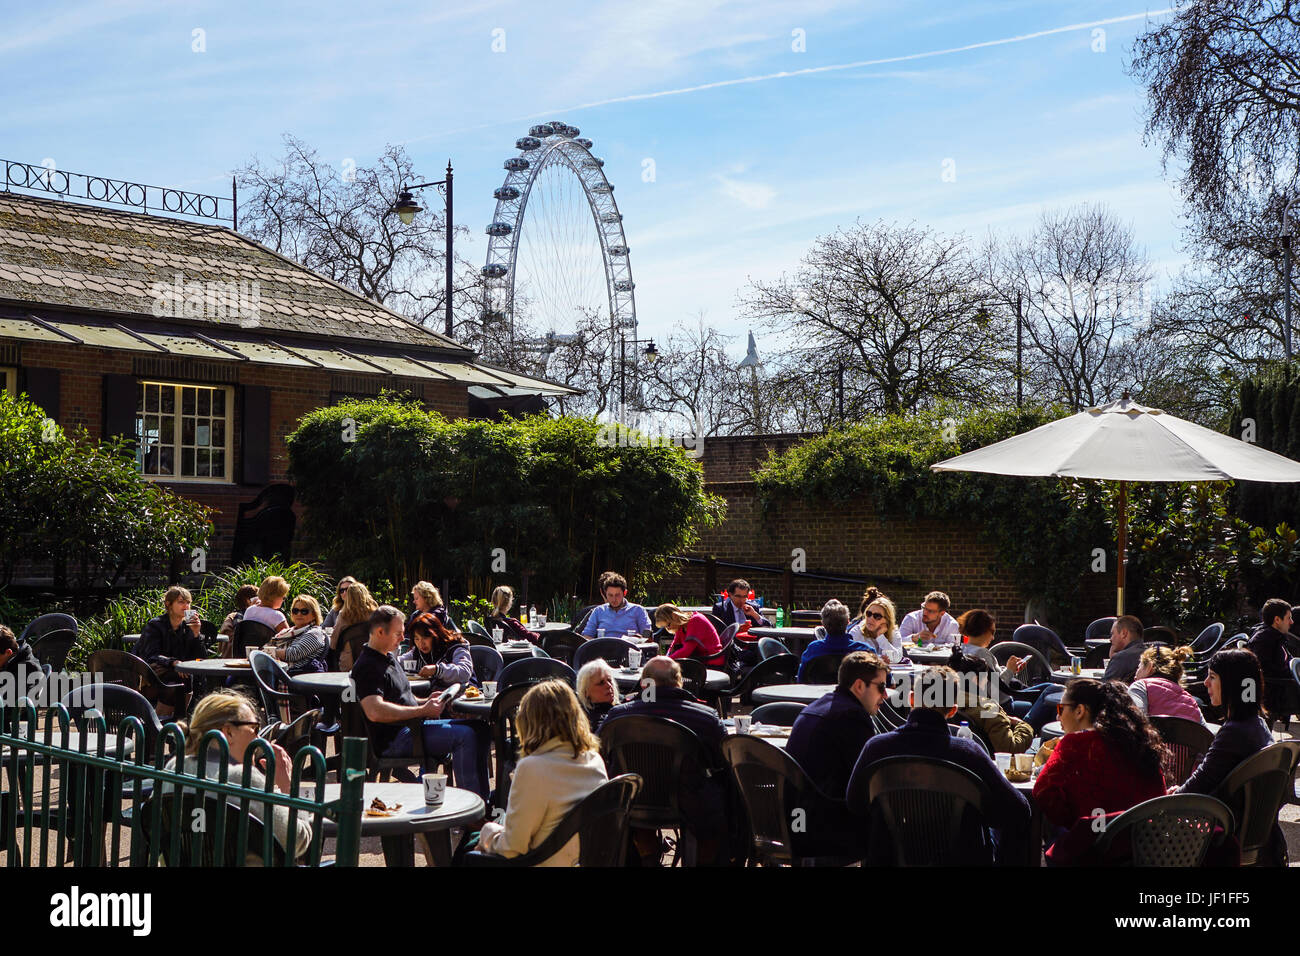 LONDON, ENGLAND, UK - APRIL 24 2017 : unidentified people relax in the park lunch break. Is widespread eating lunch Stock Photo